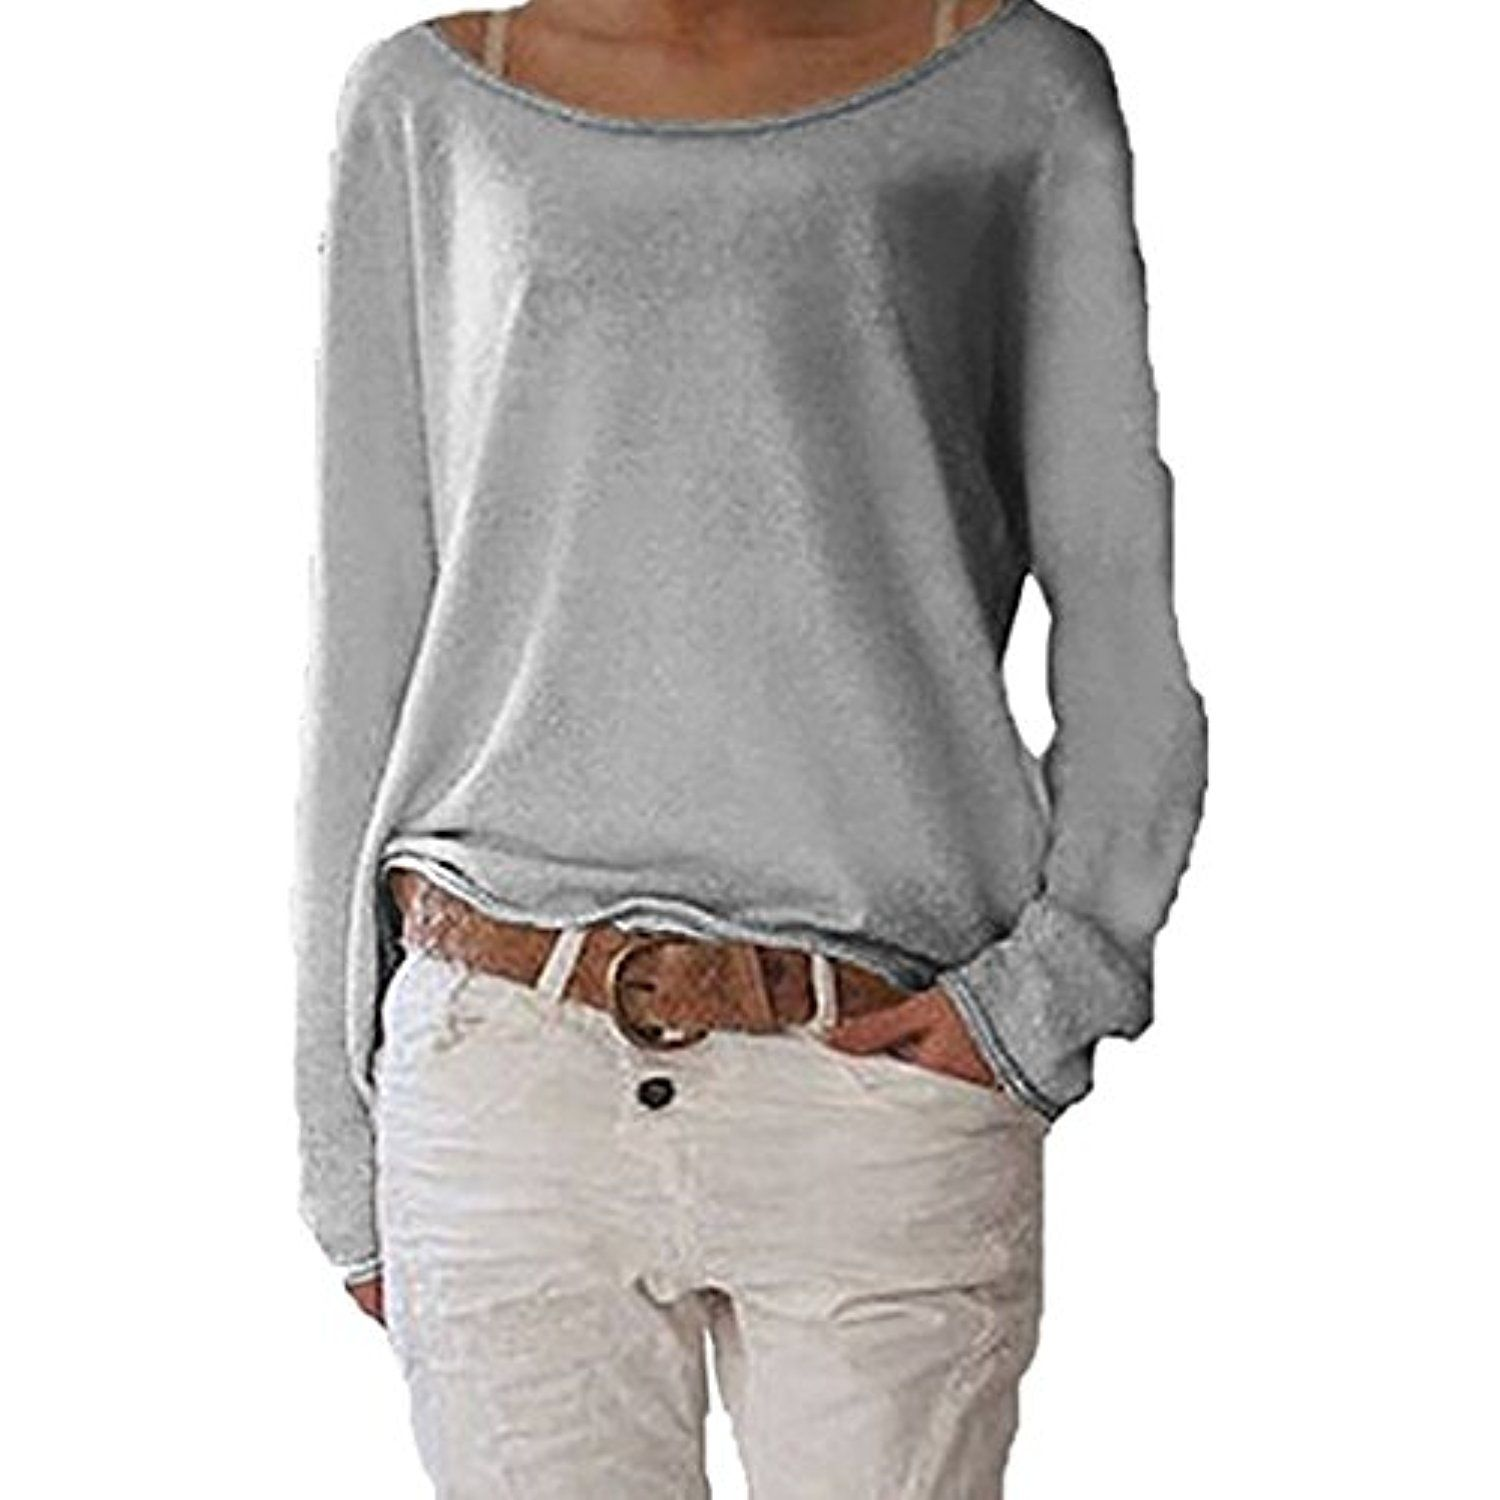 Sexi ladies Long Sleeve Batwing Baggy Jumper Jersey Stretch Tunic Top 32